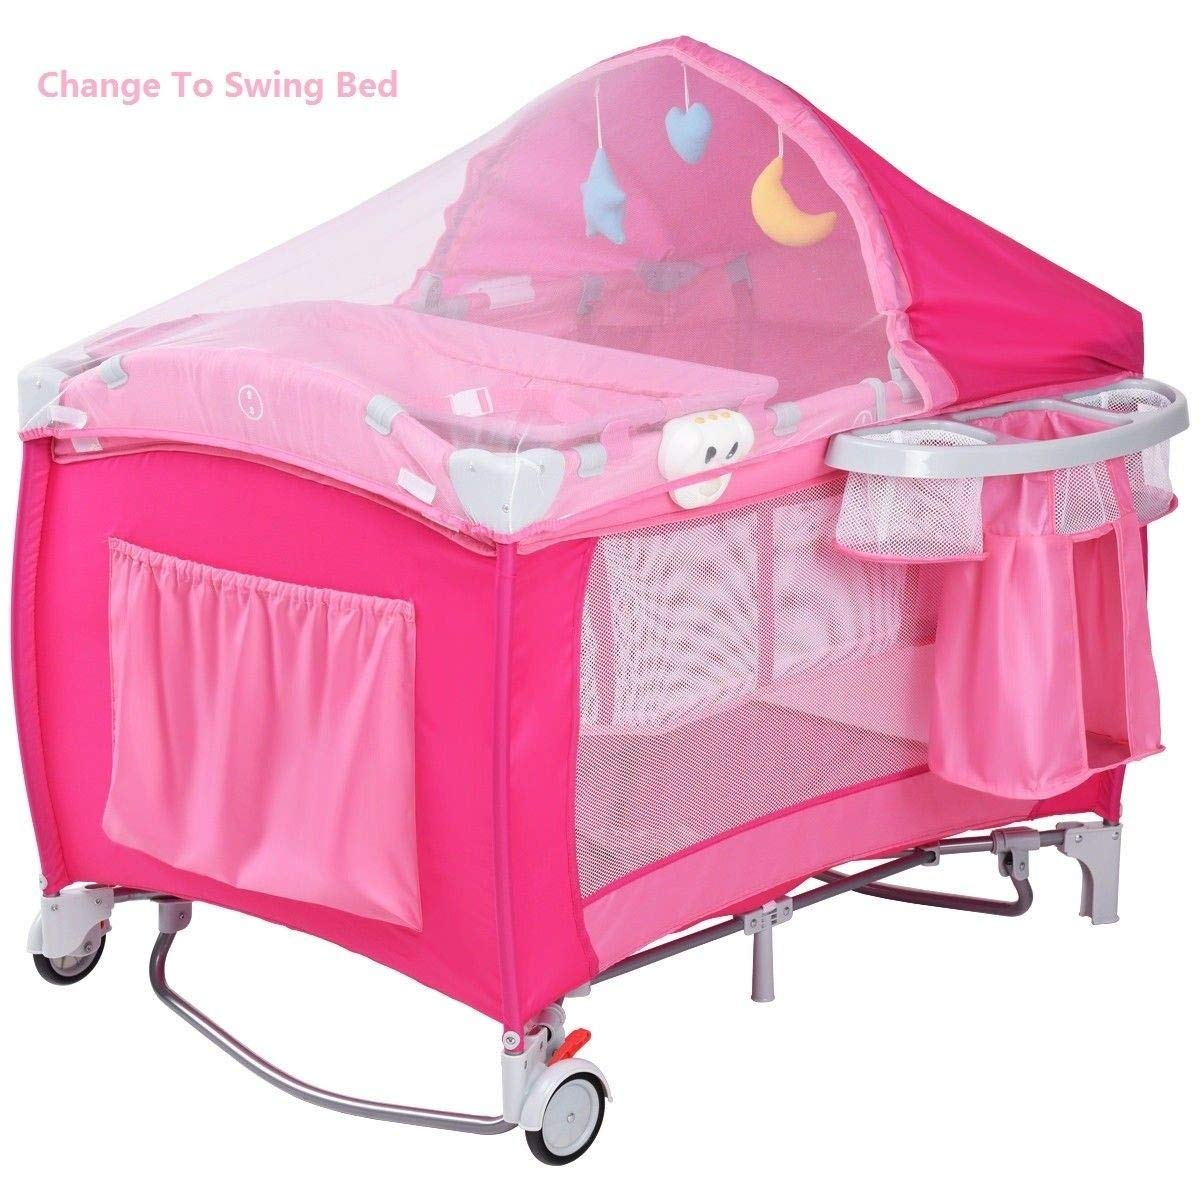 LHONE Portable Foldable Travel Baby Crib Playpen Baby 3 in One Crib Playpen Travel Playpen Changer w/Mosquito Net and Carring Bag (Pink) by LHONE (Image #3)